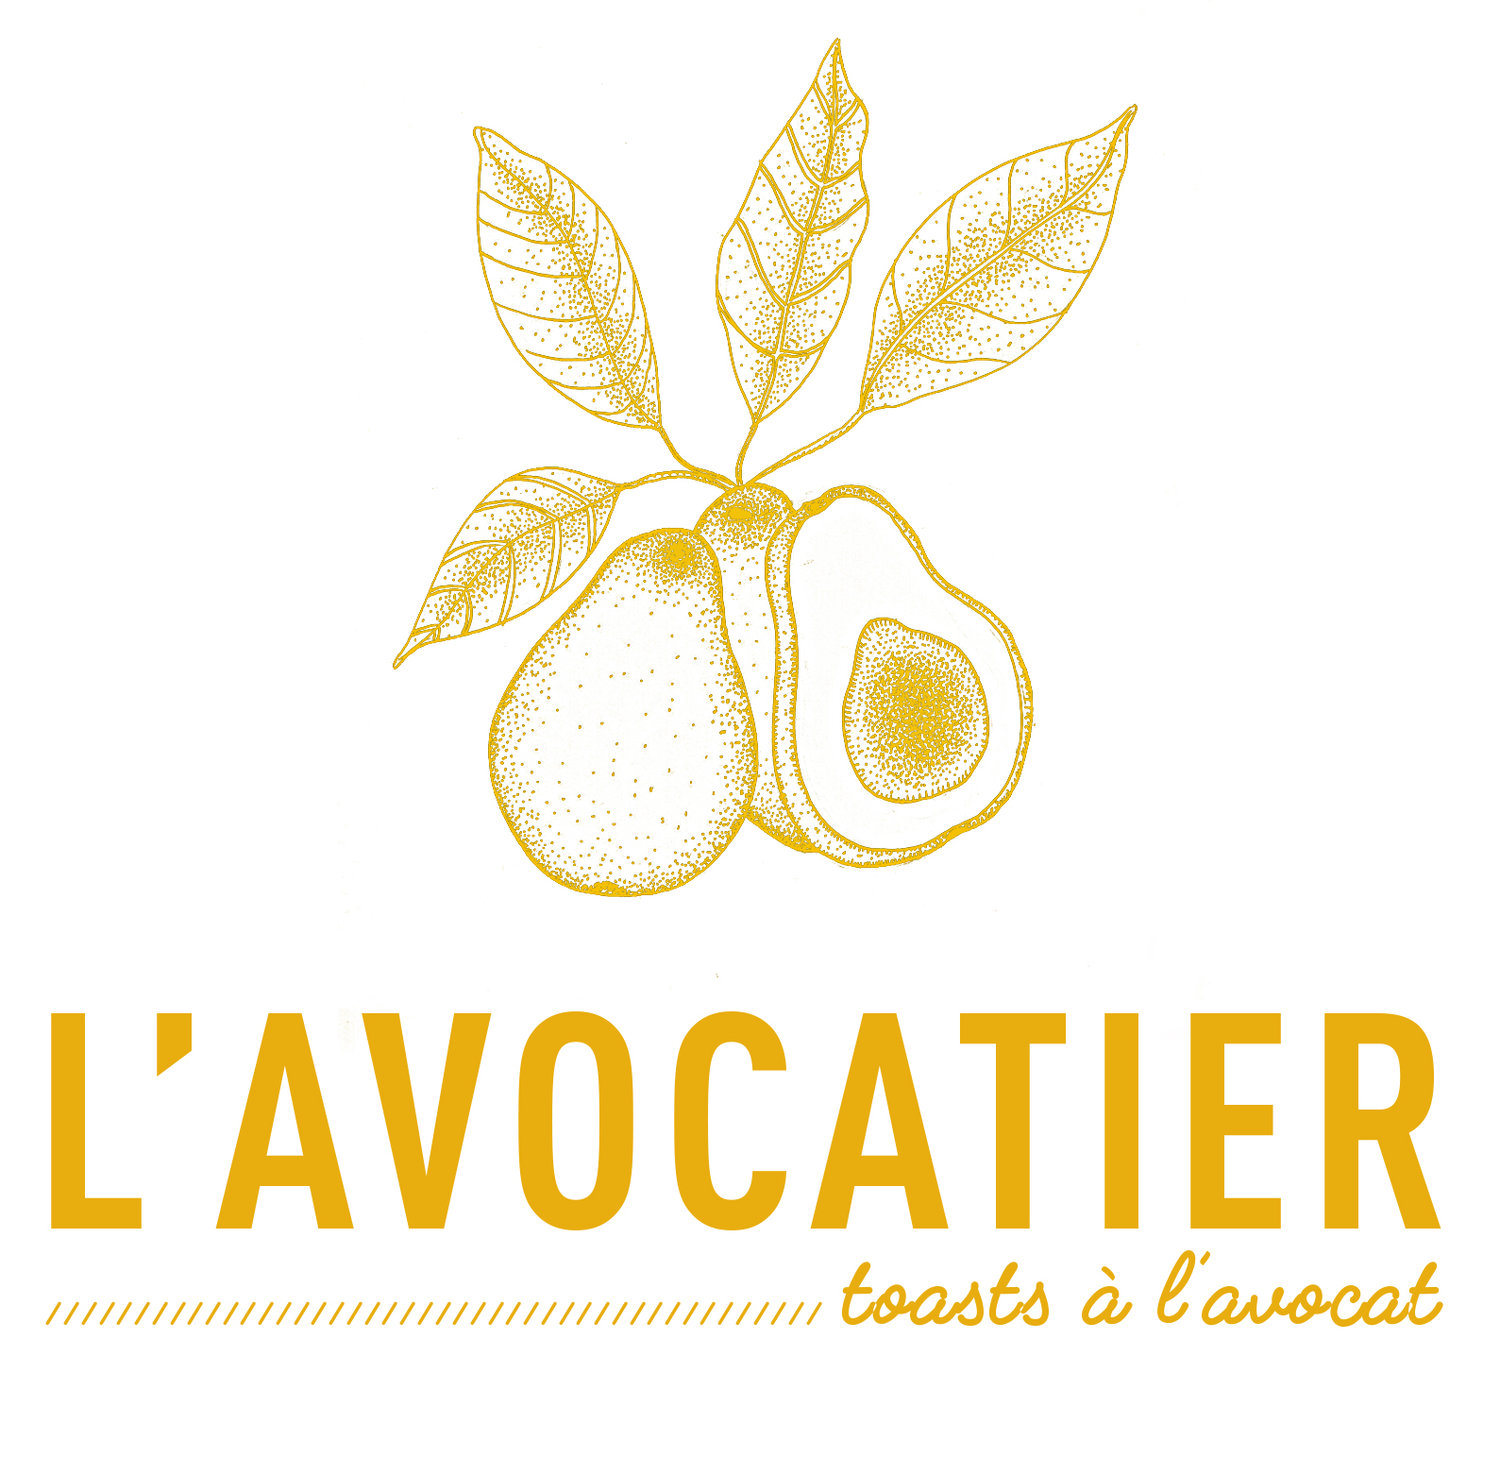 L'Avocatier